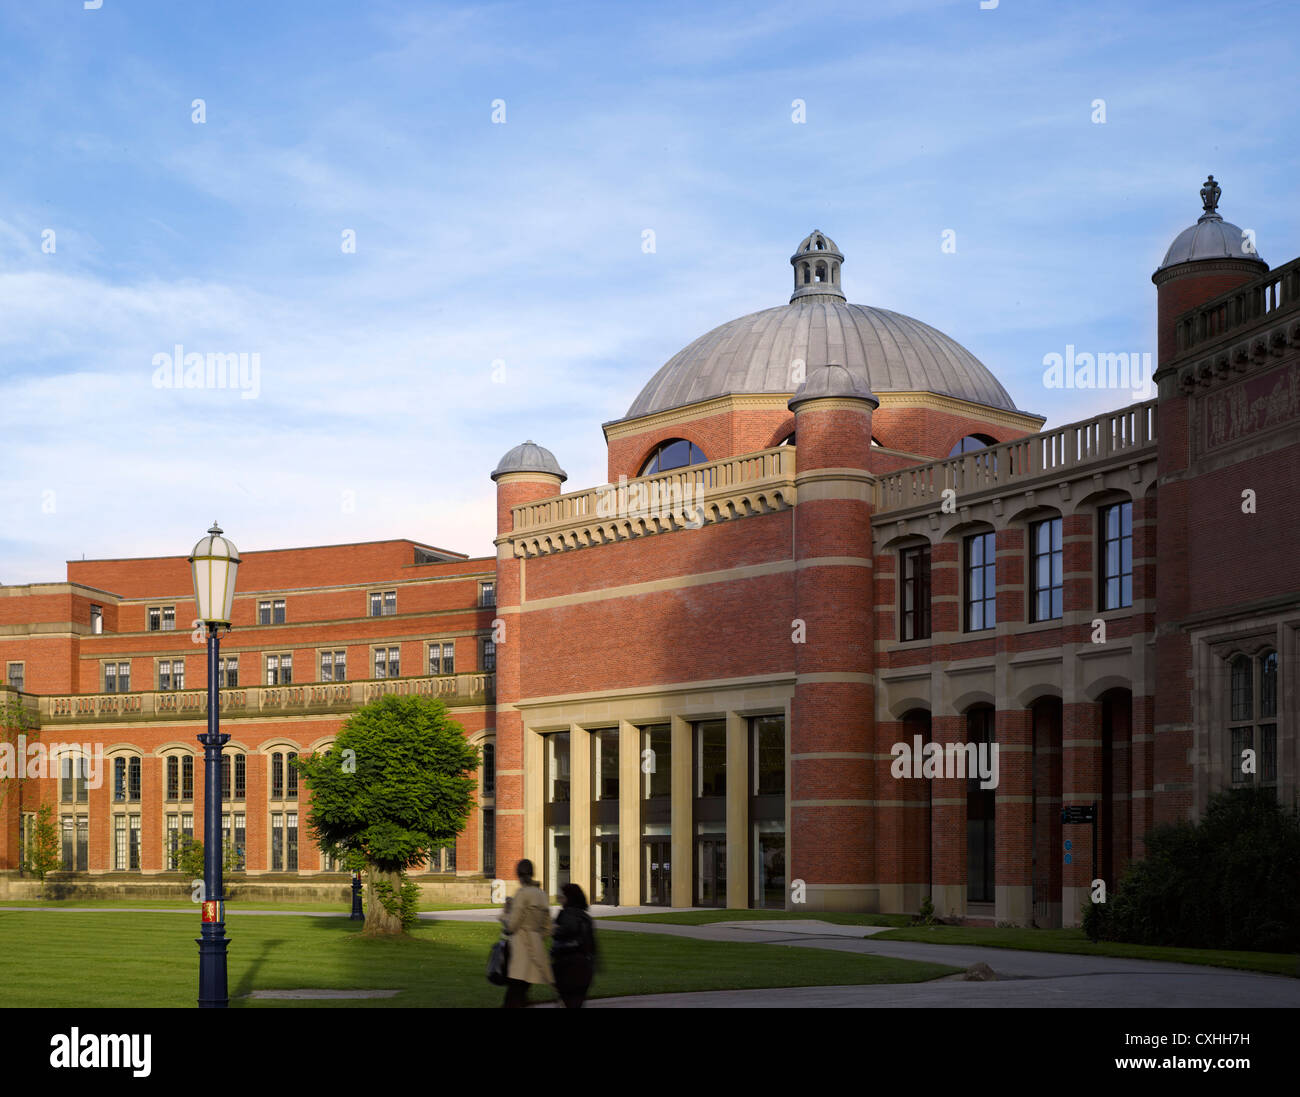 Birmingham United: Bramall Music Building, University Of Birmingham